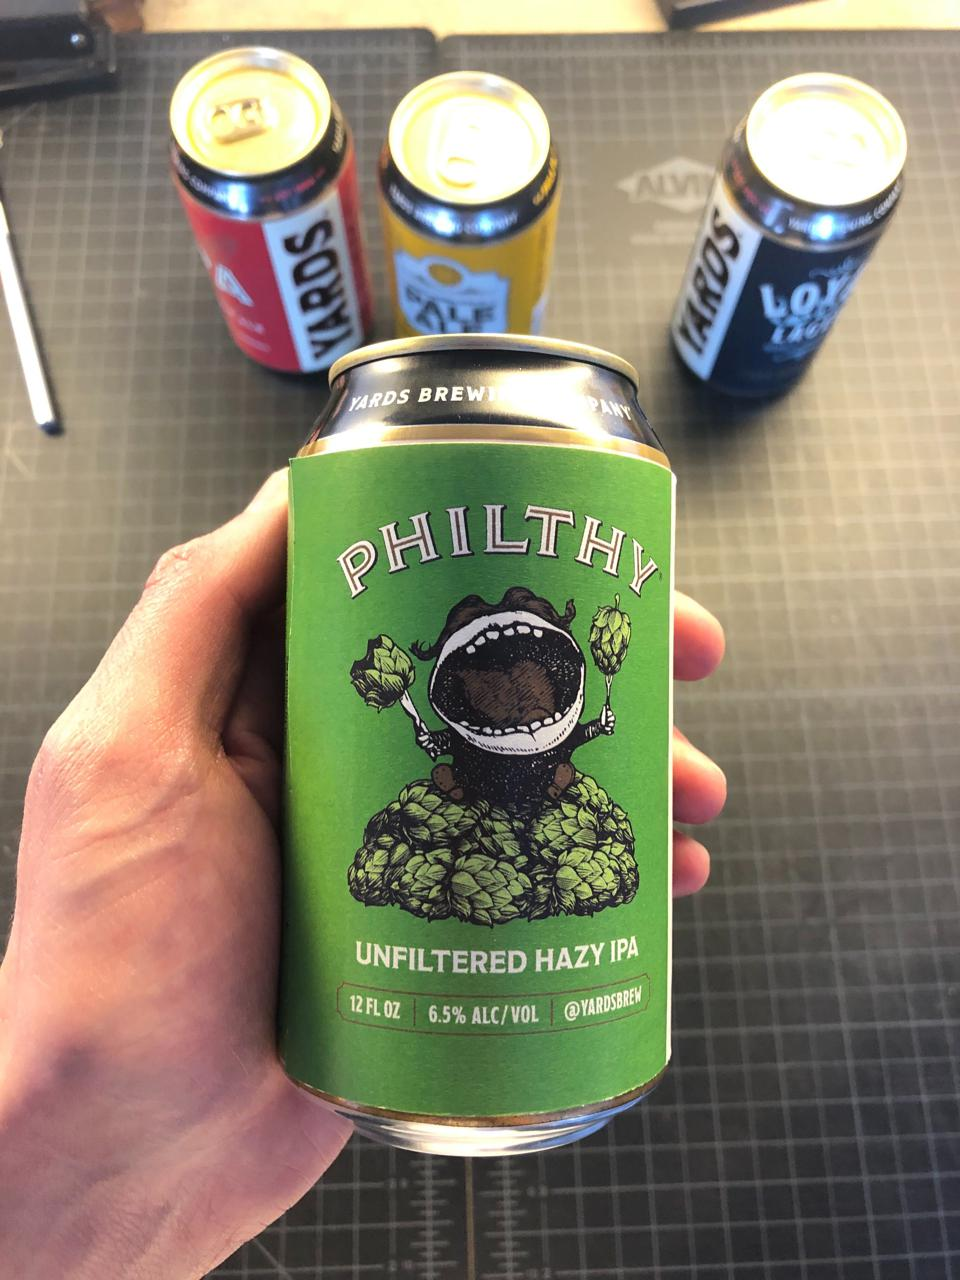 Philthy, an unfiltered hazy IPA, was successfully launched during the pandemic.